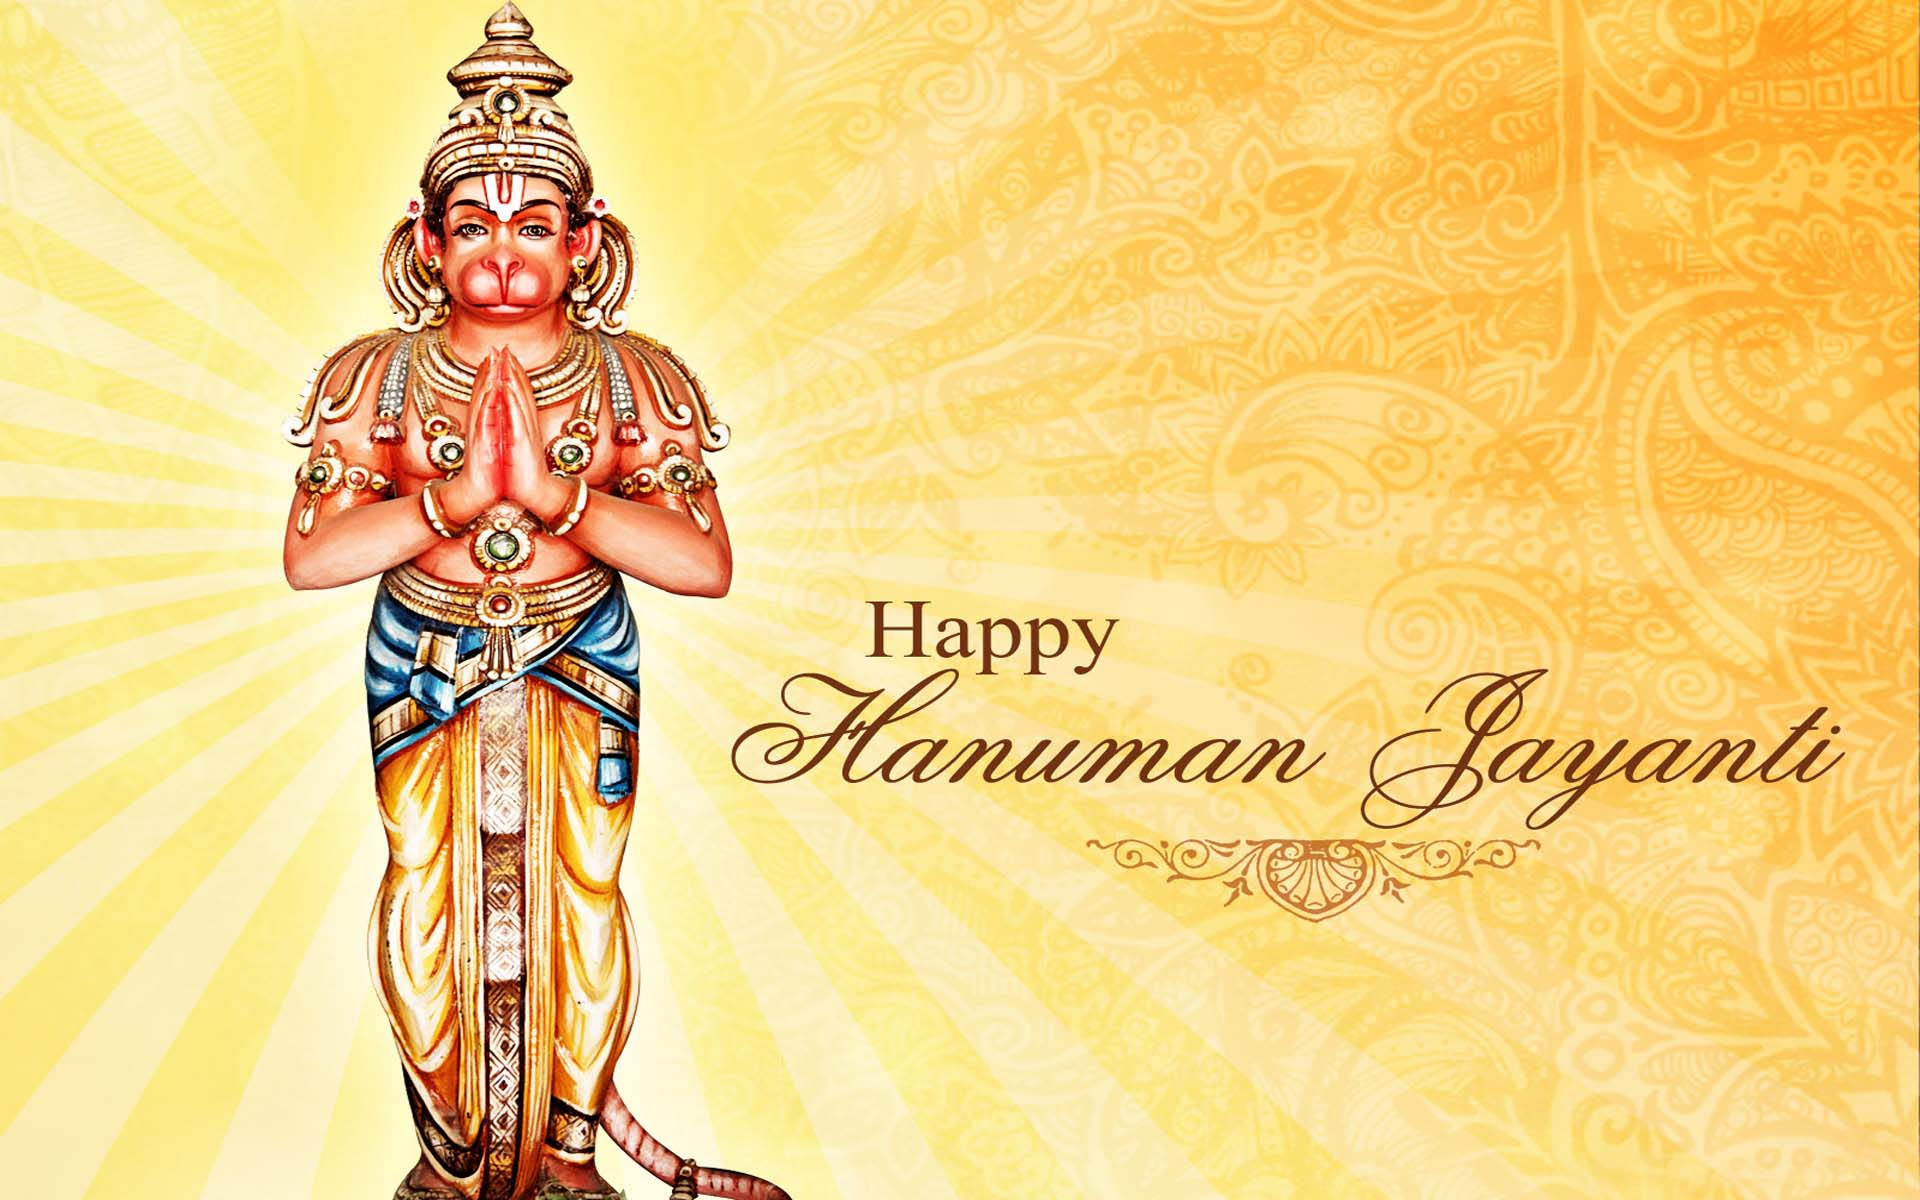 Hanuman Jayanti 2017 HD Wallpaper